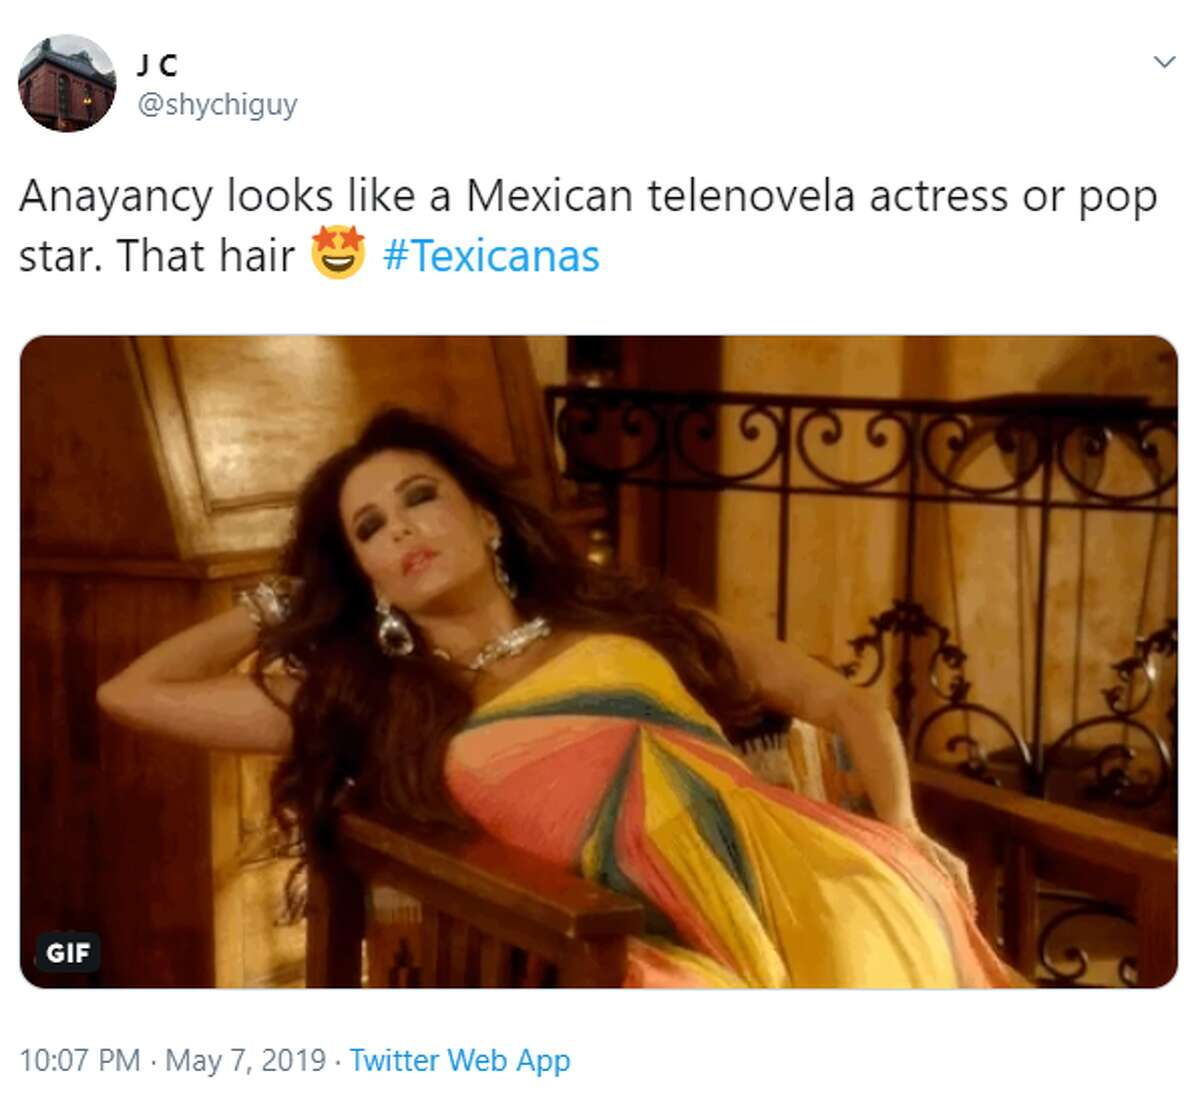 @shychiguy: Anayancy looks like a Mexican telenovela actress or pop star. That hair #Texicanas